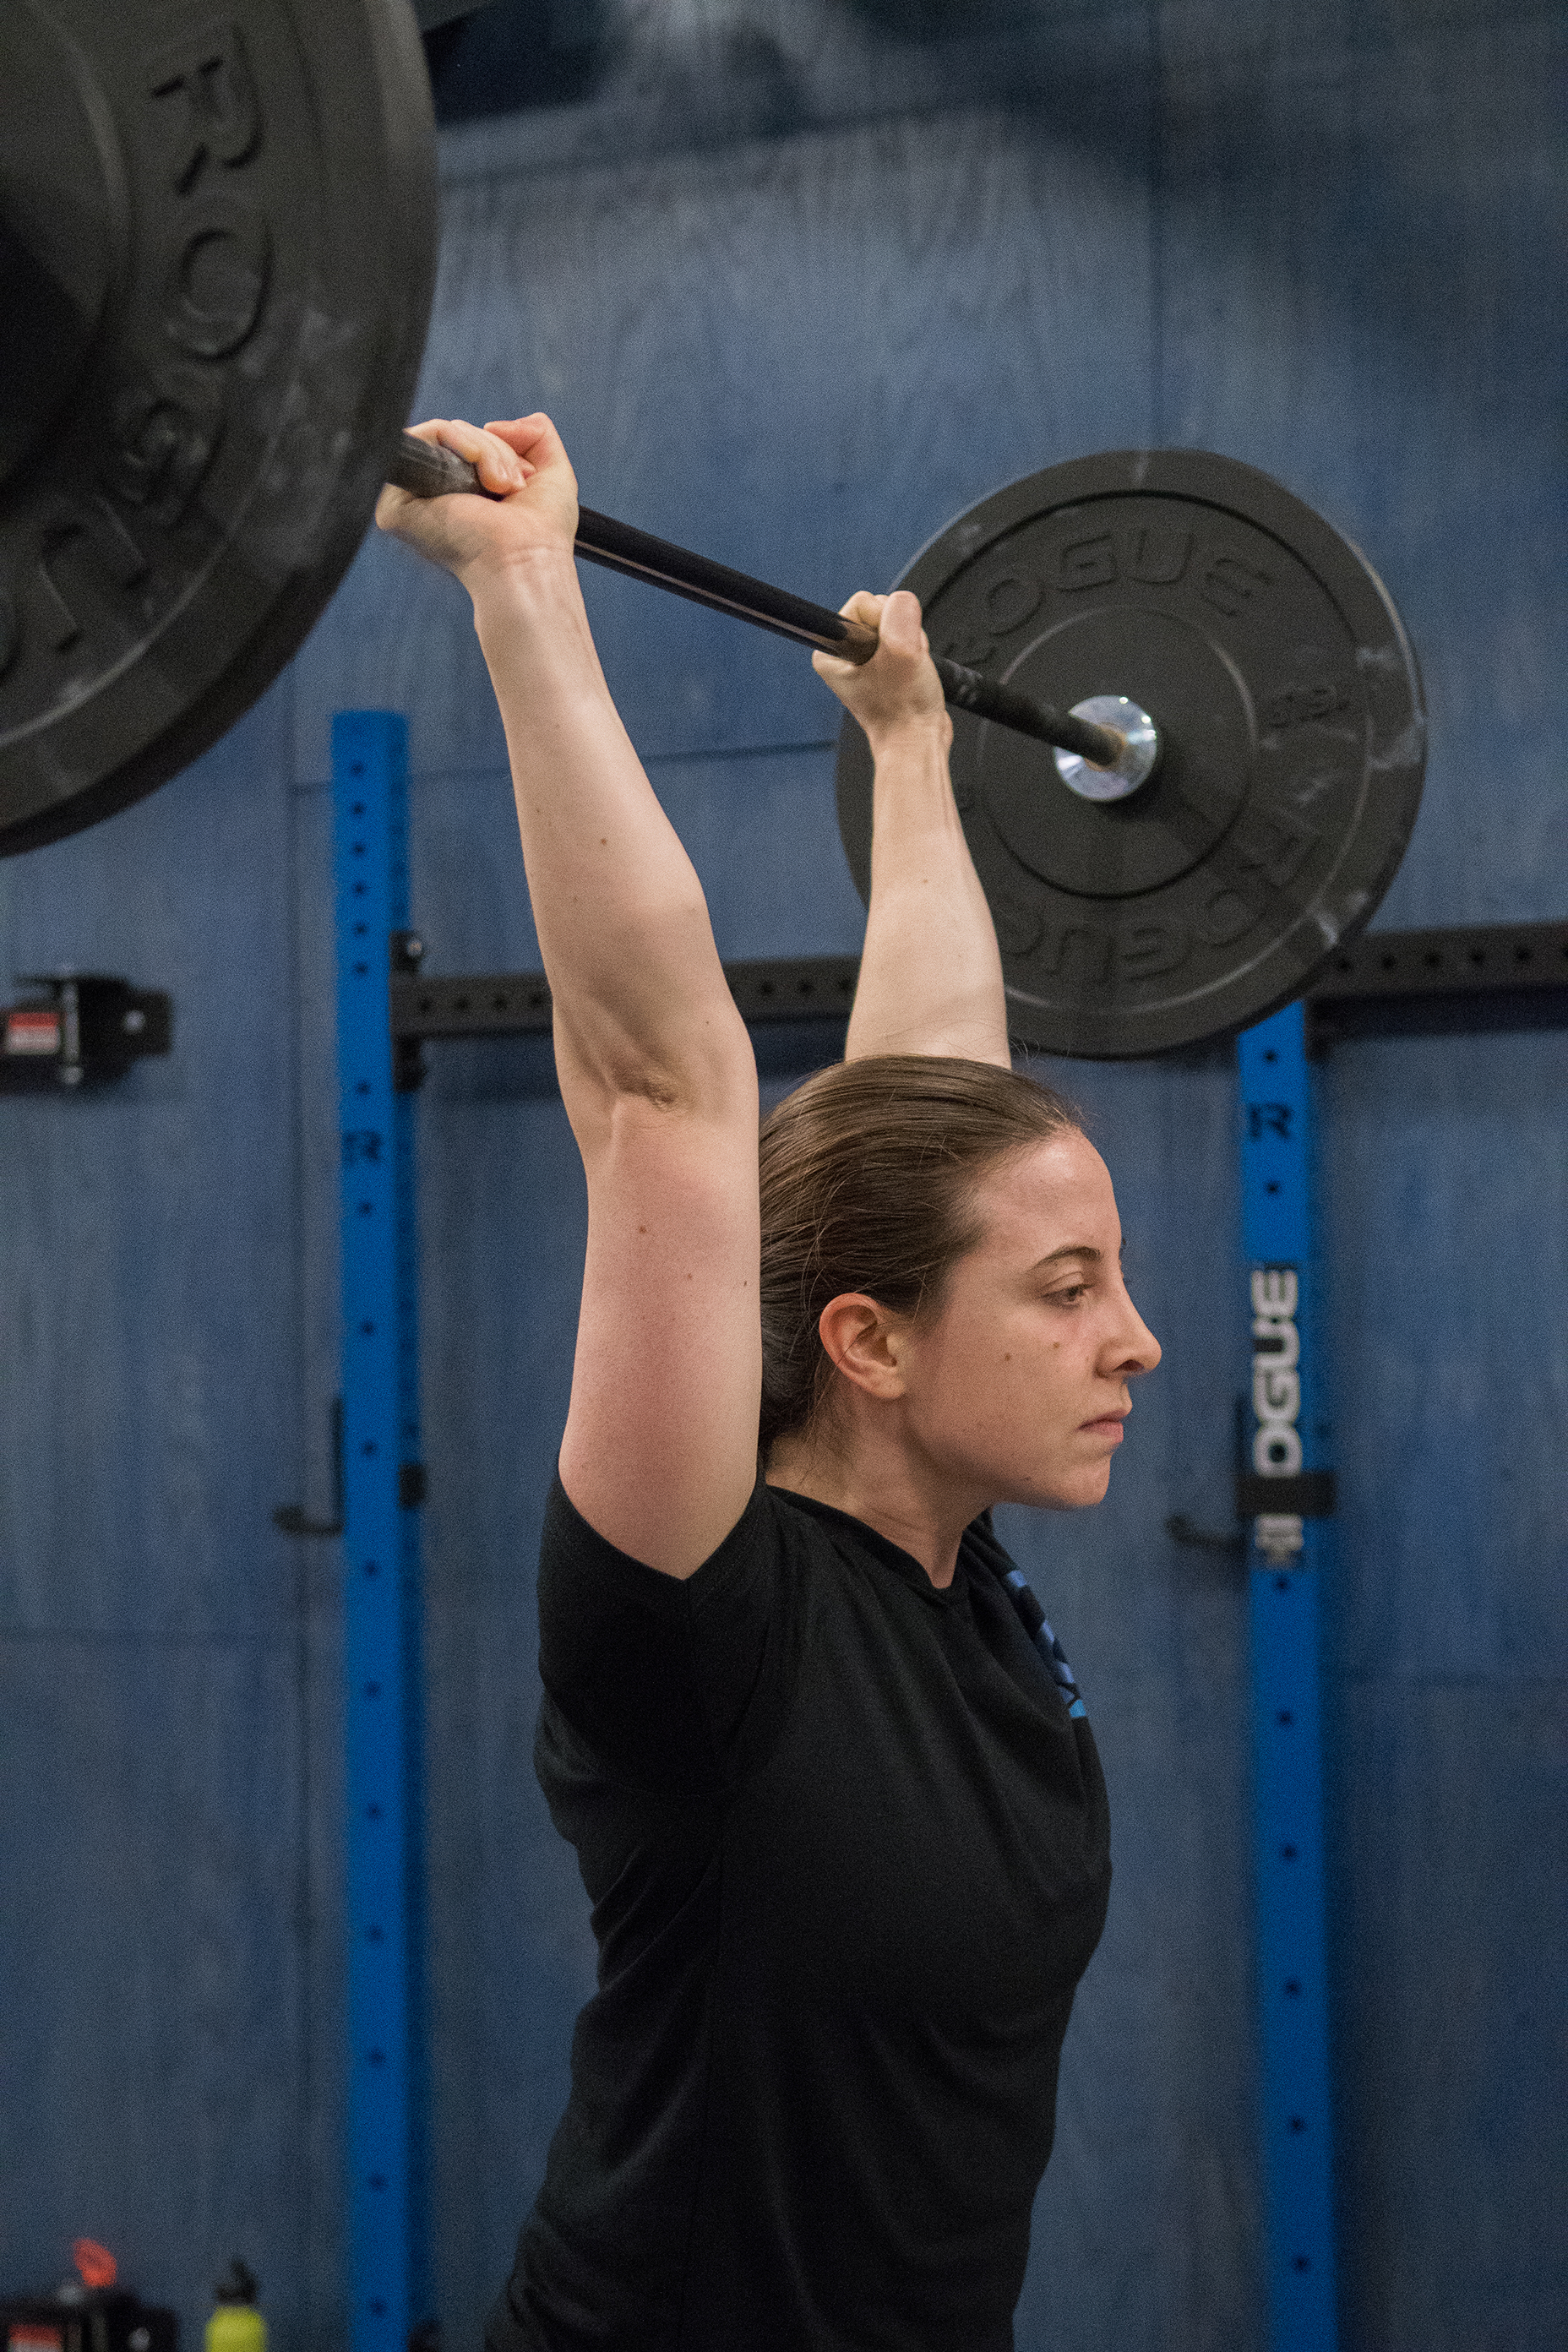 ICE NYC CrossFit Open 17.5 @martsromero - Quick Selects 023 20170324.jpg